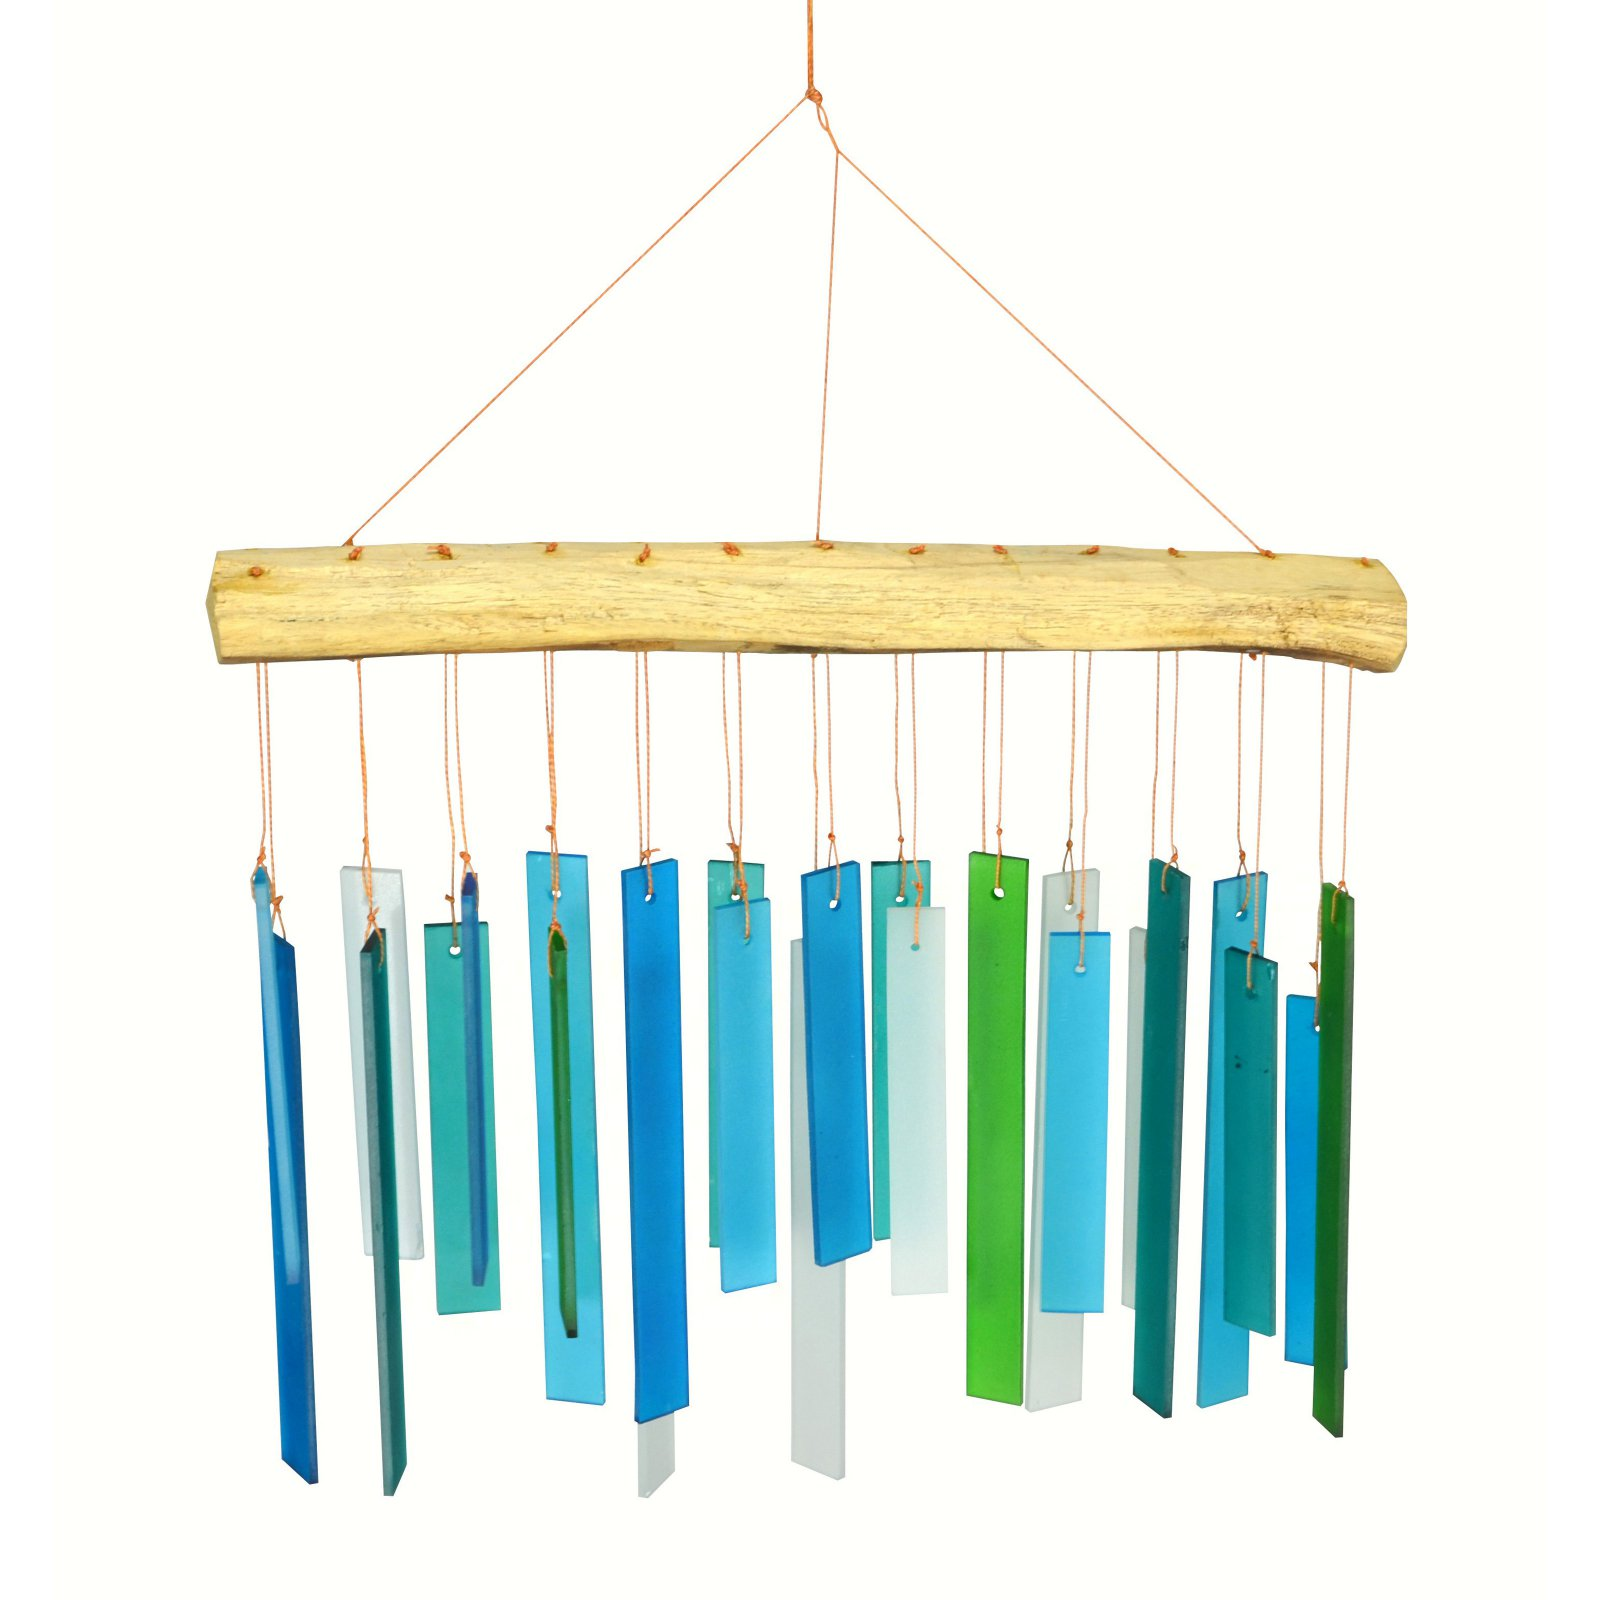 Gift Essentials Seaglass and Driftwood Wind Chime by Plow & Hearth